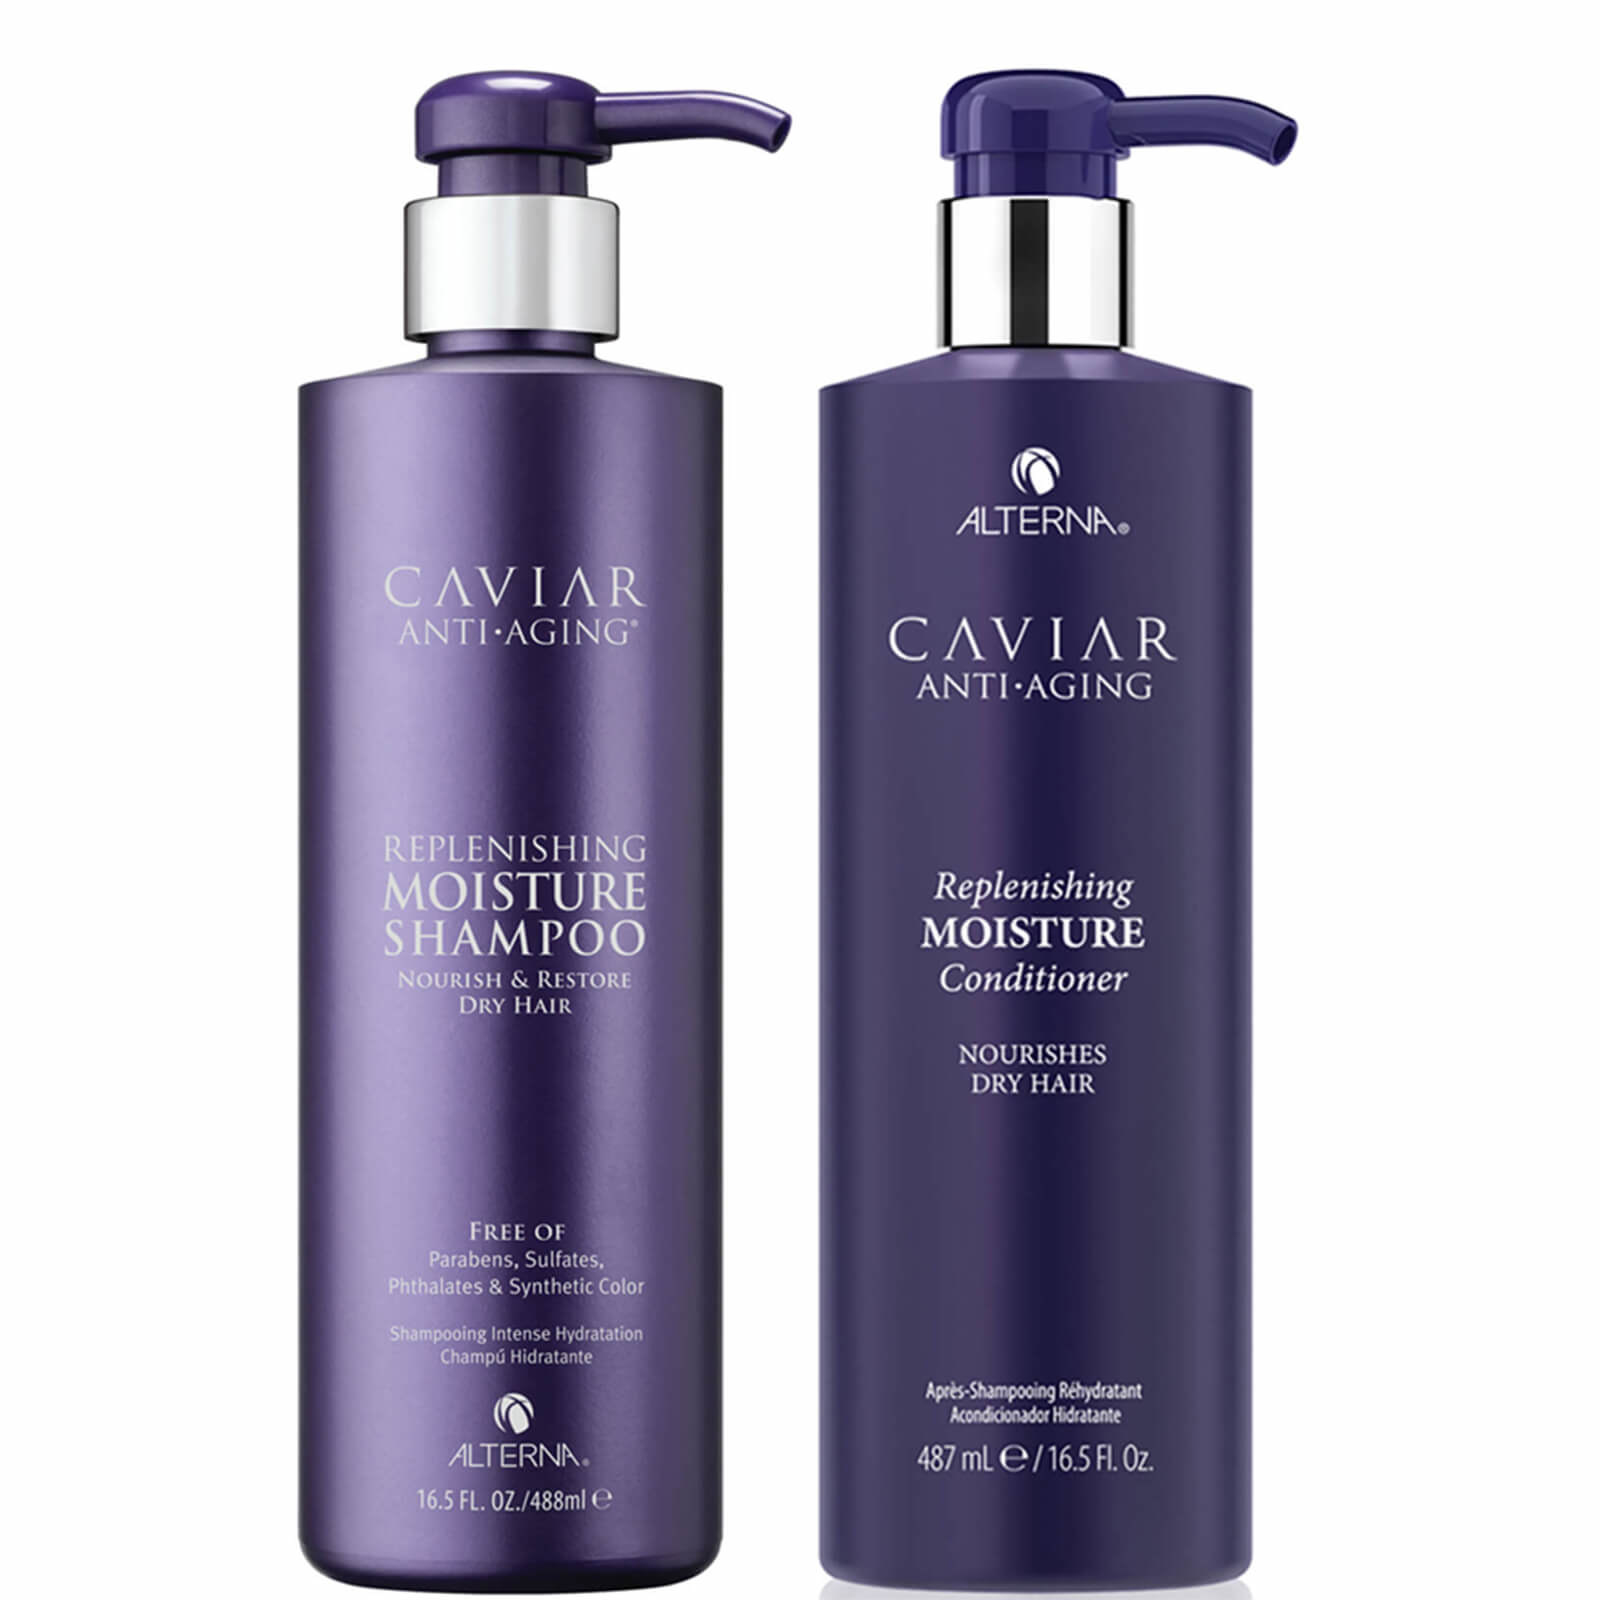 Side by side purple bottles of replenishing moisture shampoo and conditioner